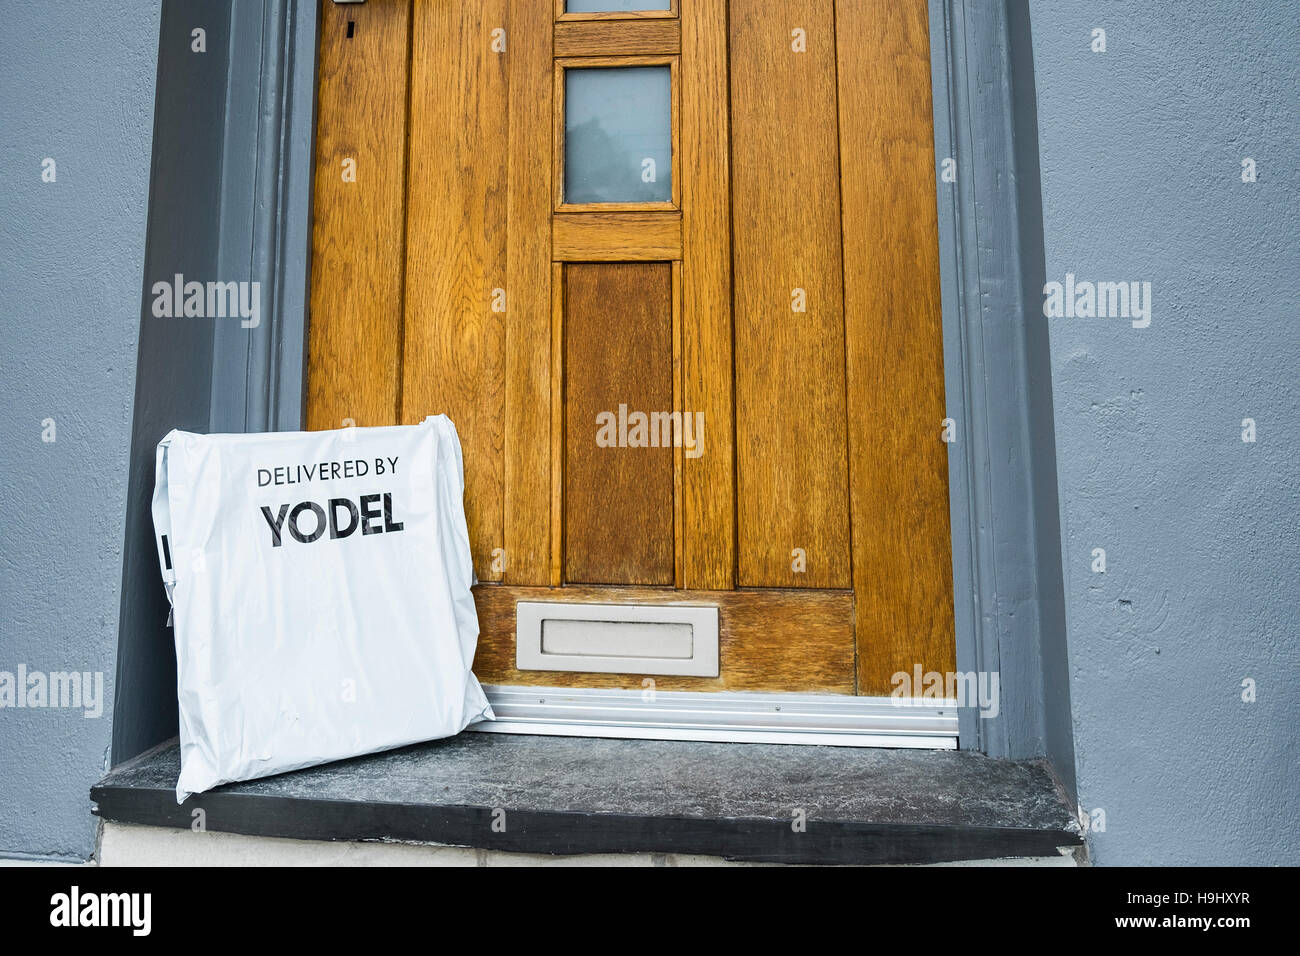 A parcel delivered to a house by Yodel and left on the doorstep. - Stock Image